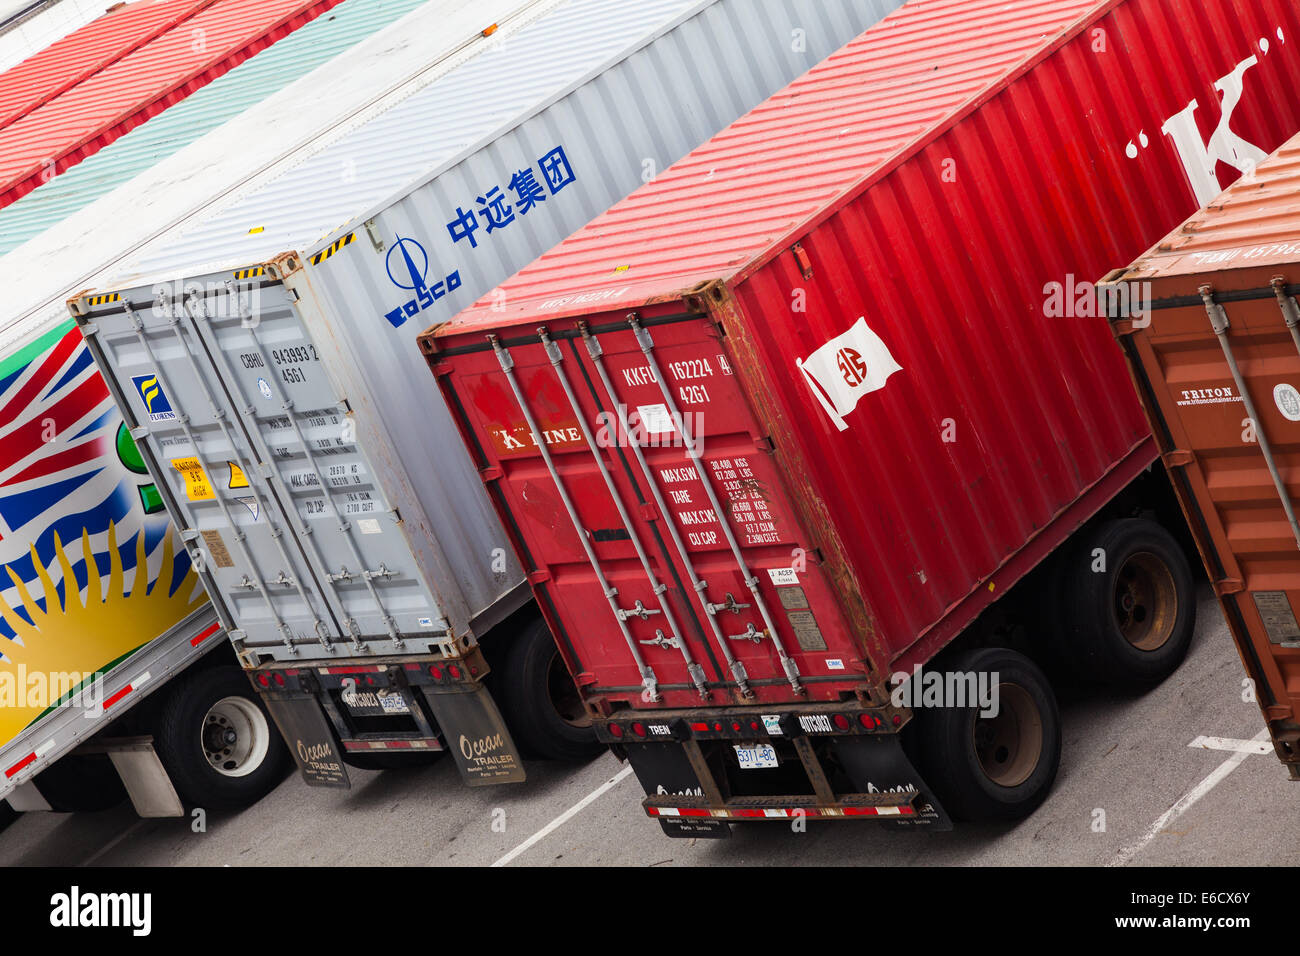 Abstract view of shipping containers loaded on to delivery trucks in Vancouver, Canada - Stock Image